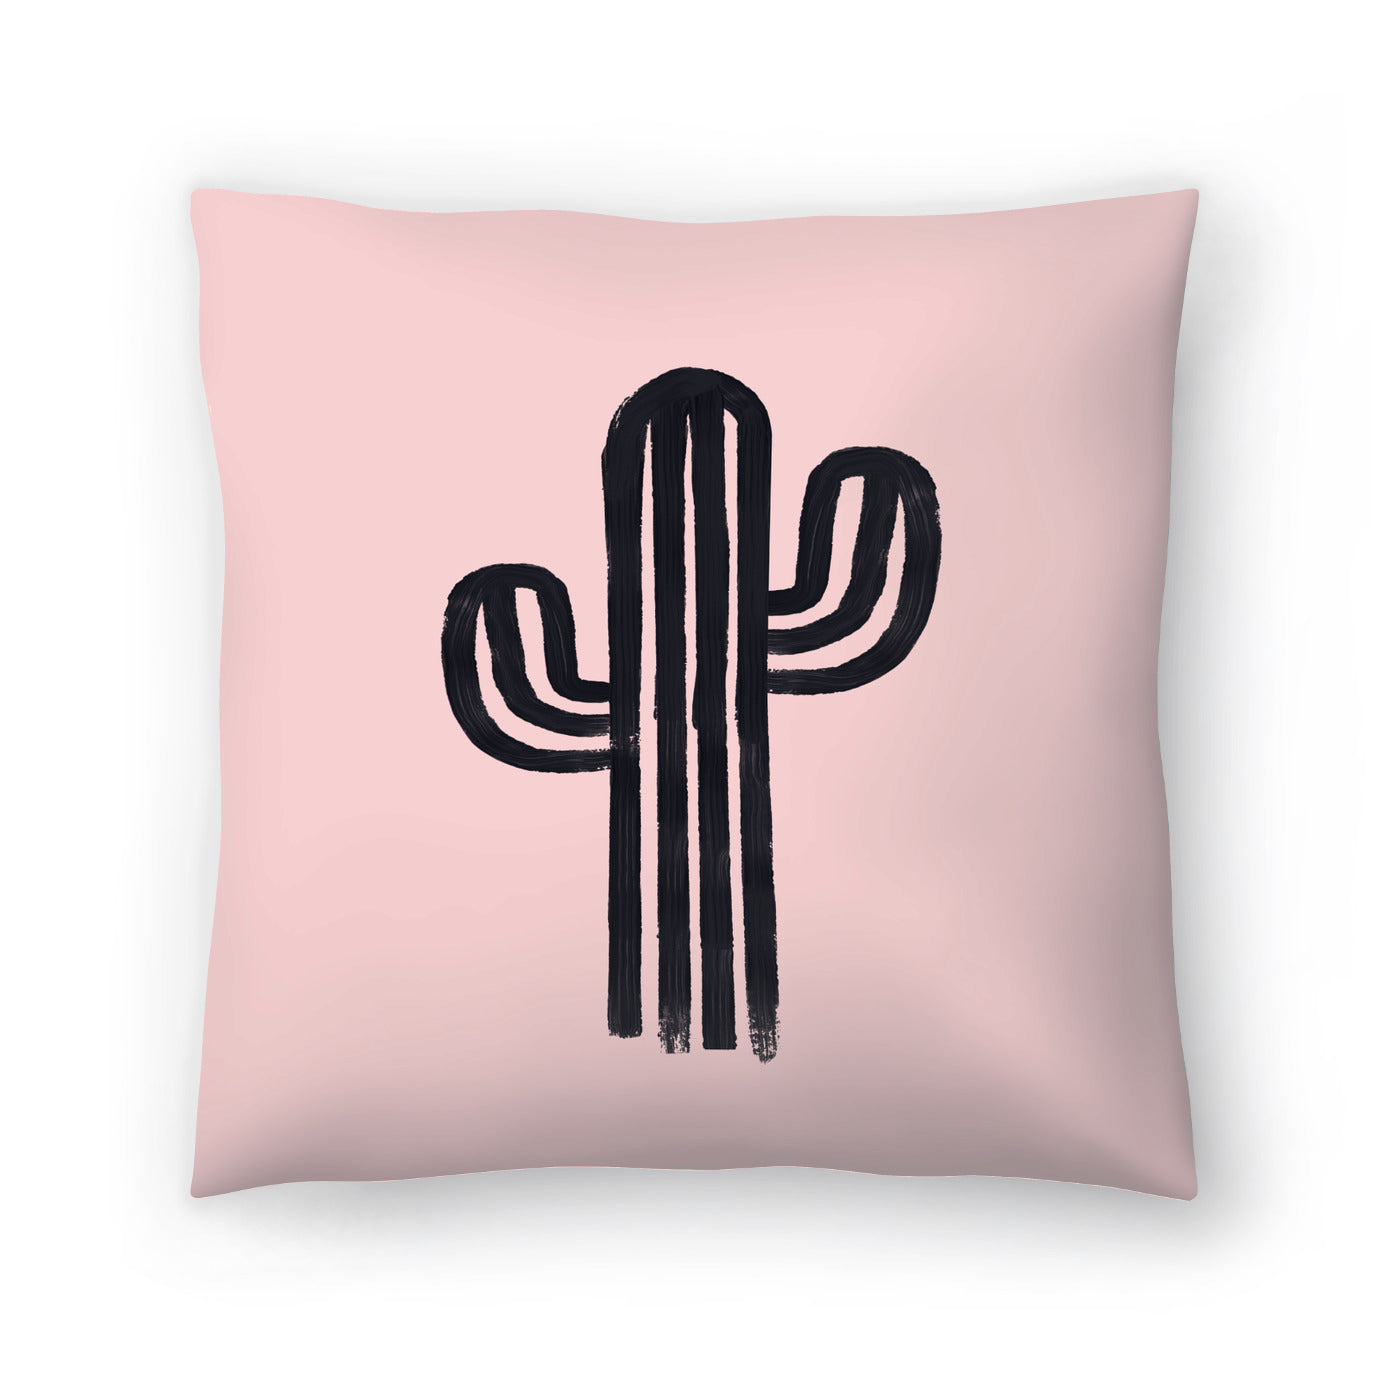 God Cactus by Emanuela Carratoni Decorative Pillow - Decorative Pillow - Americanflat